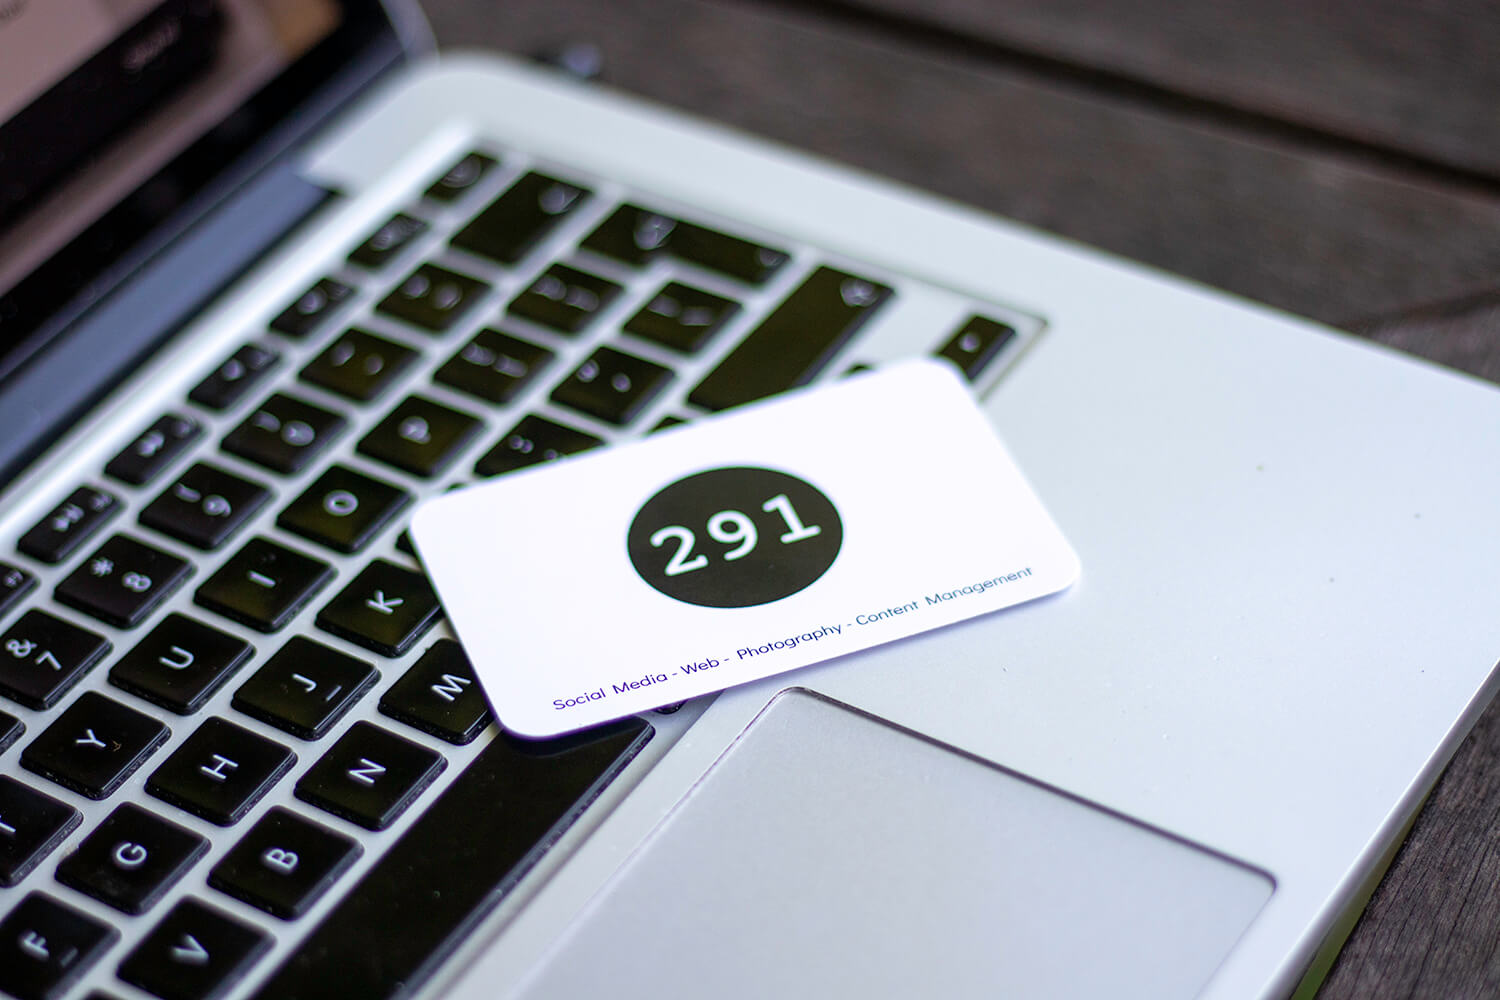 291 Media business card on a Macbook offering a digital audit